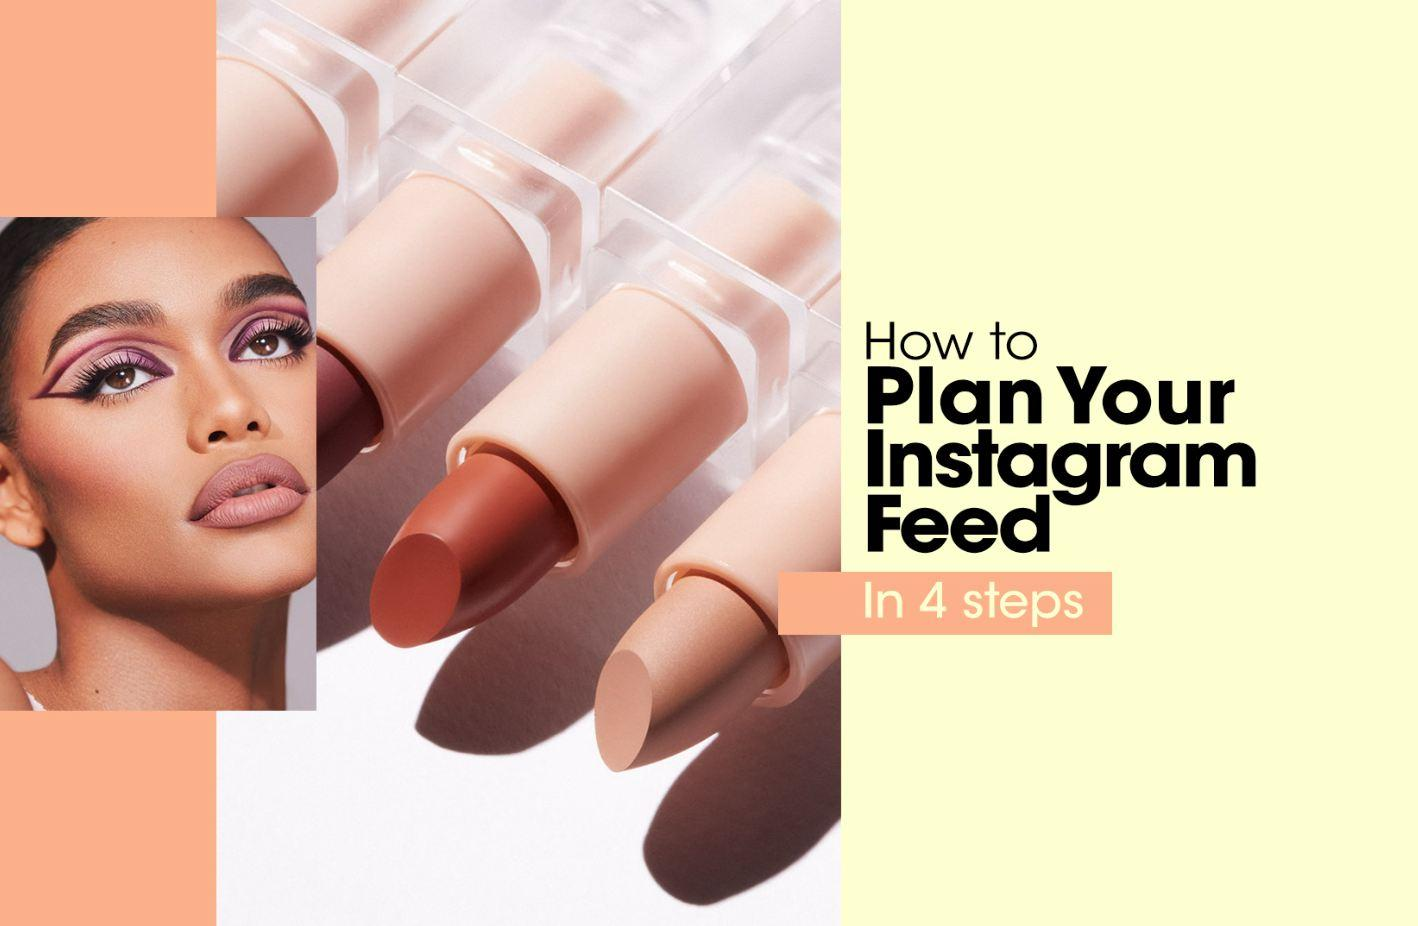 How to Plan Your Instagram Feed - News